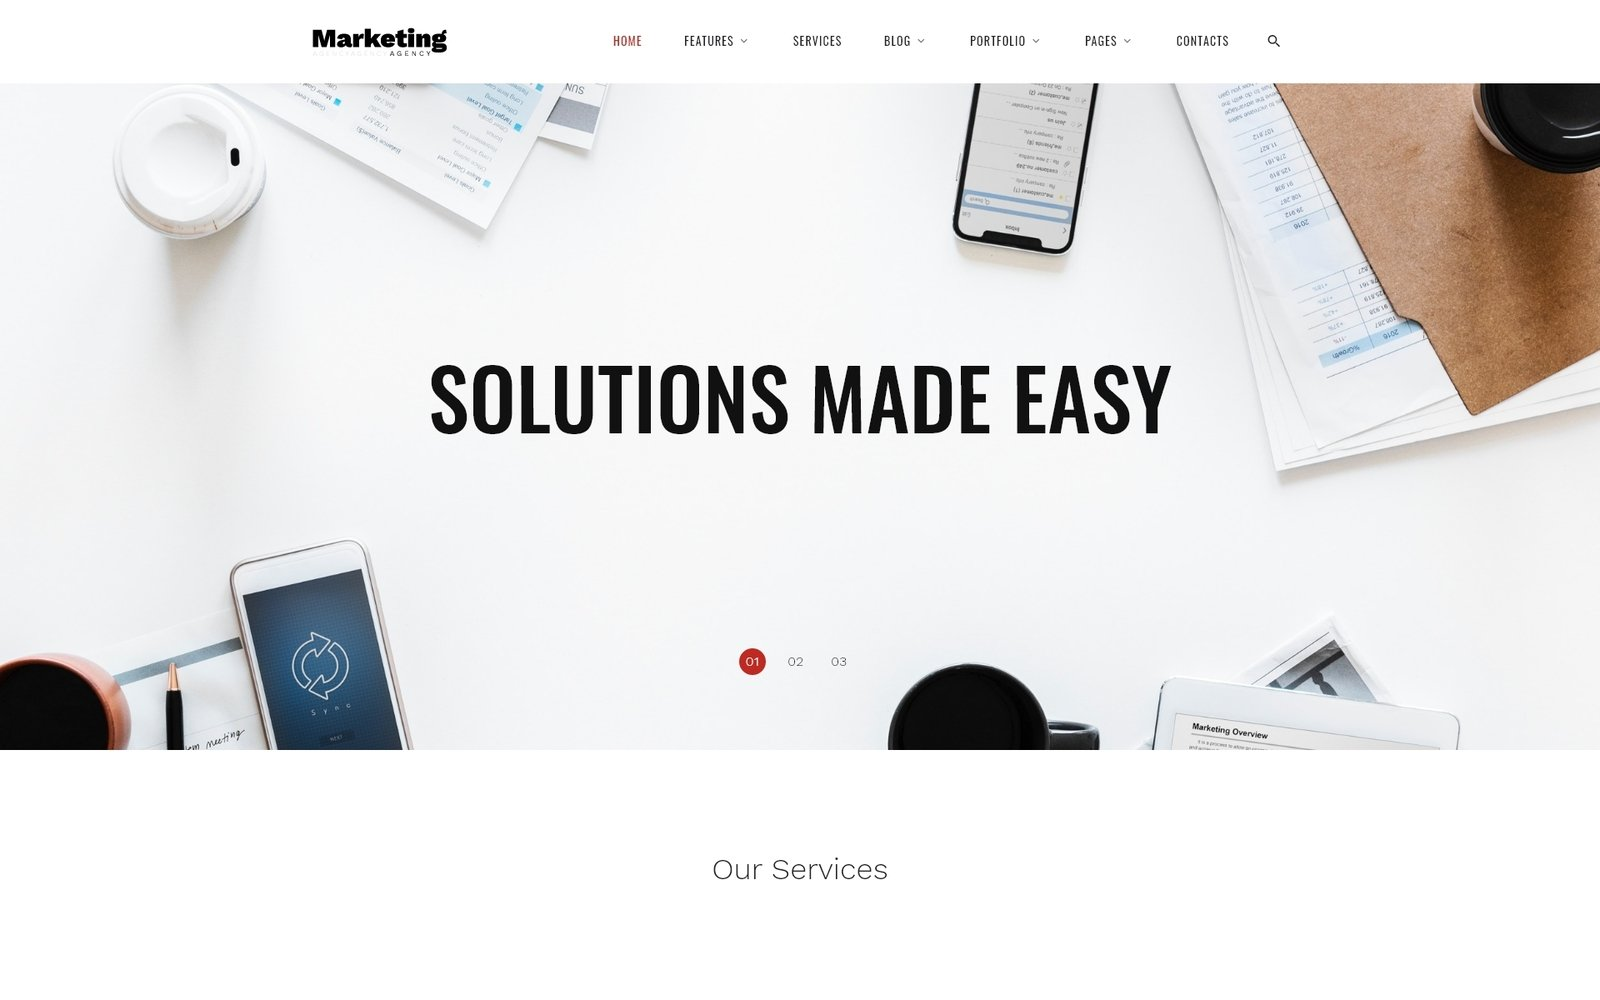 Marketing Agency - Responsive Marketing Agency Multipage Website Template - screenshot